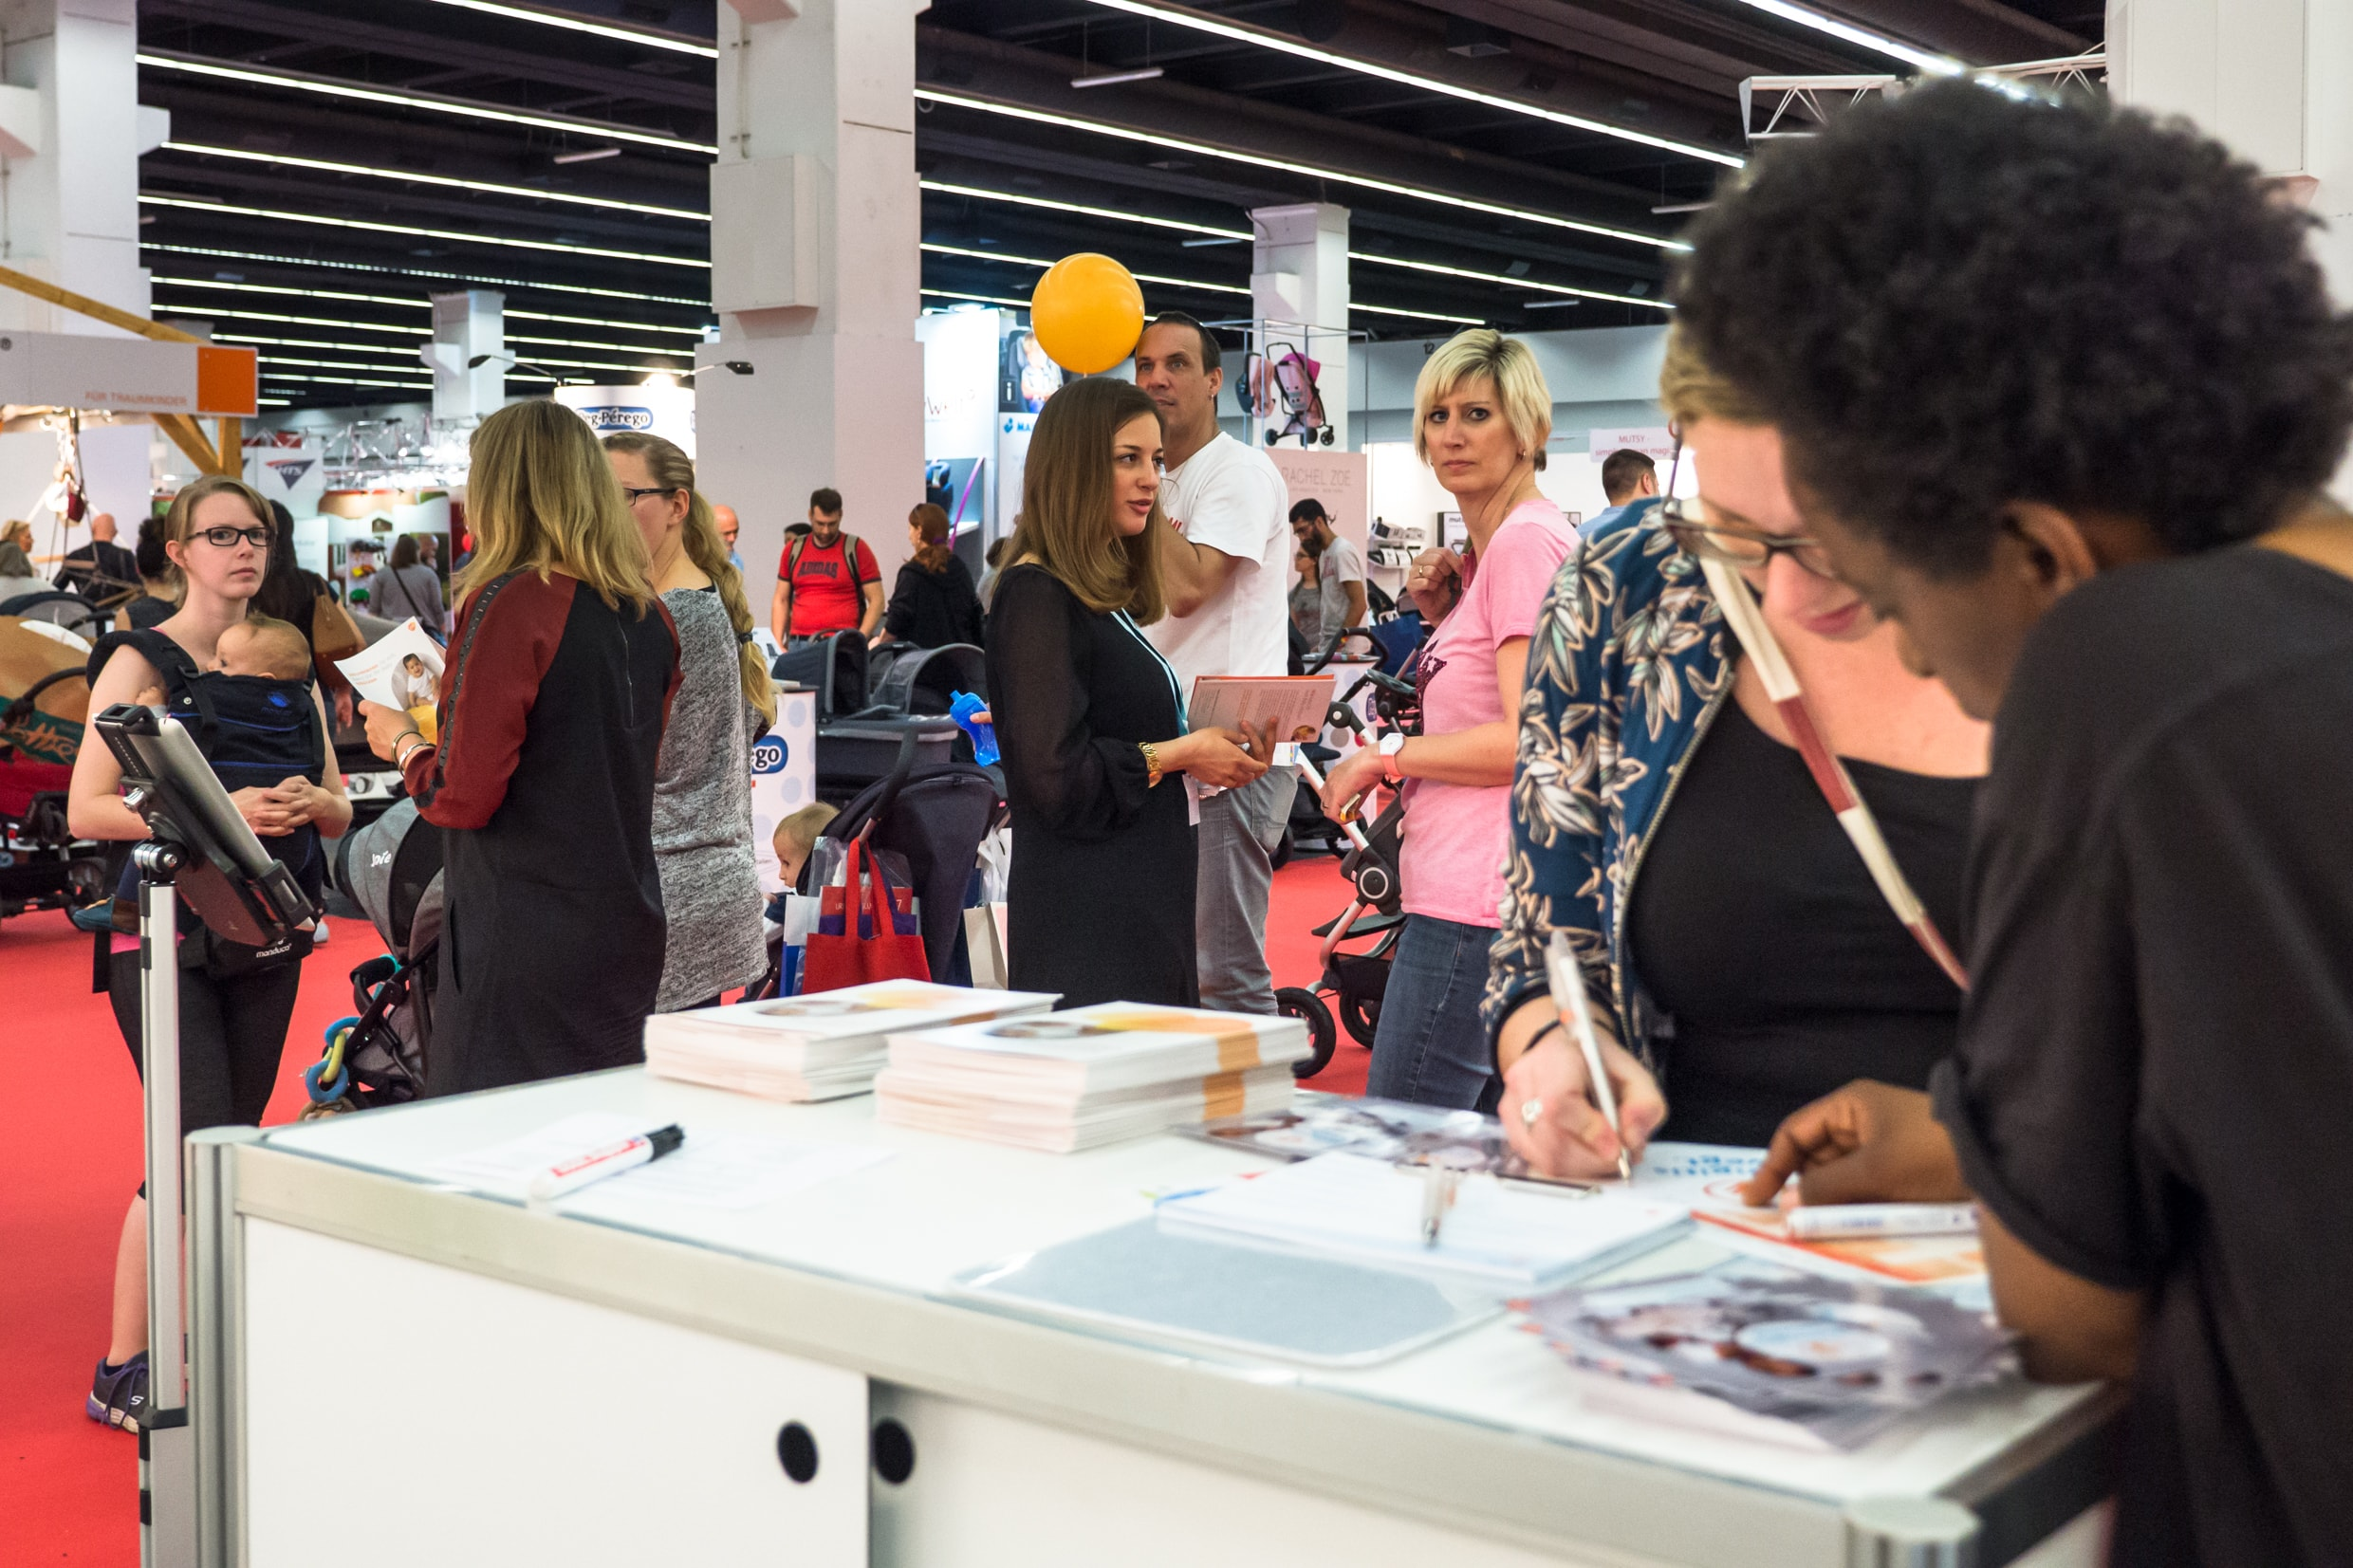 Shary Reeves-BabyWelt Messe-Autogramme.jpg